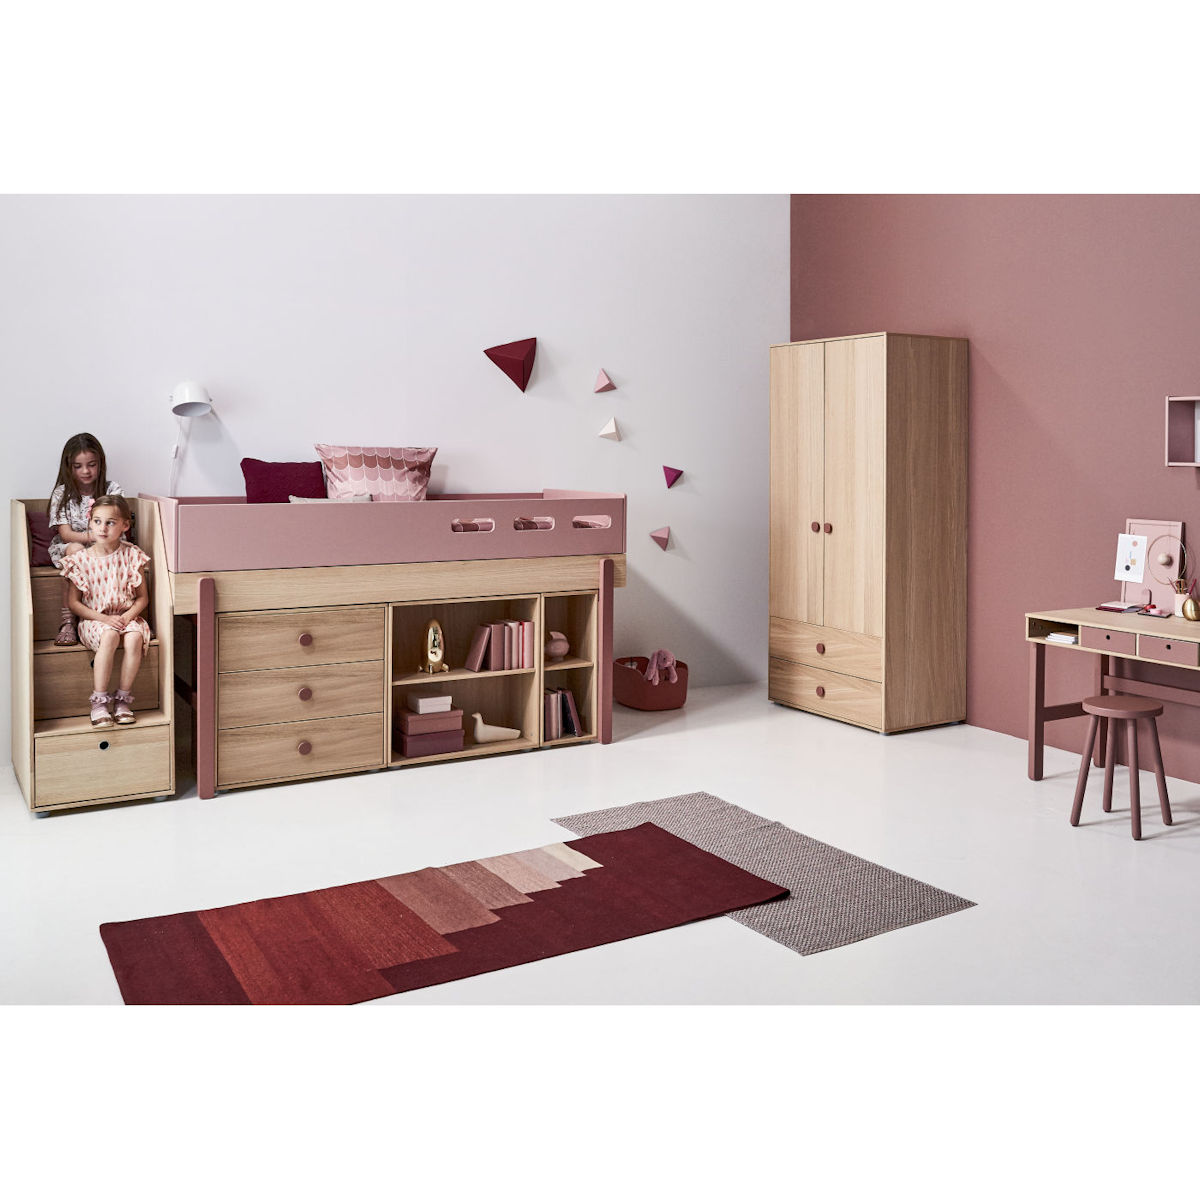 flexa popsicle halbhohes bett 90x200 kiwi 90 10765 31 1295. Black Bedroom Furniture Sets. Home Design Ideas